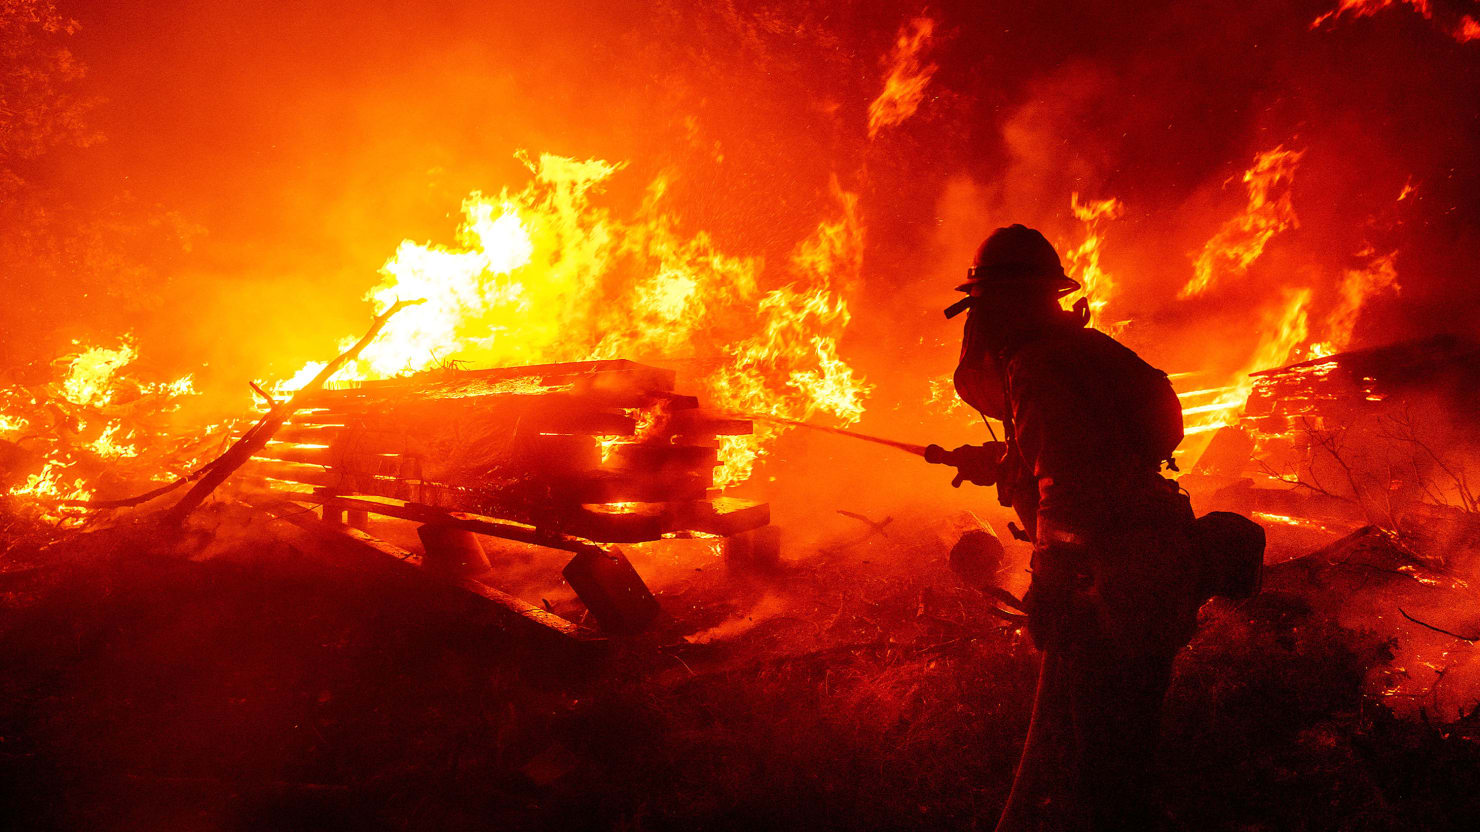 The Wildfires Engulfing the West Coast Have Become Dire